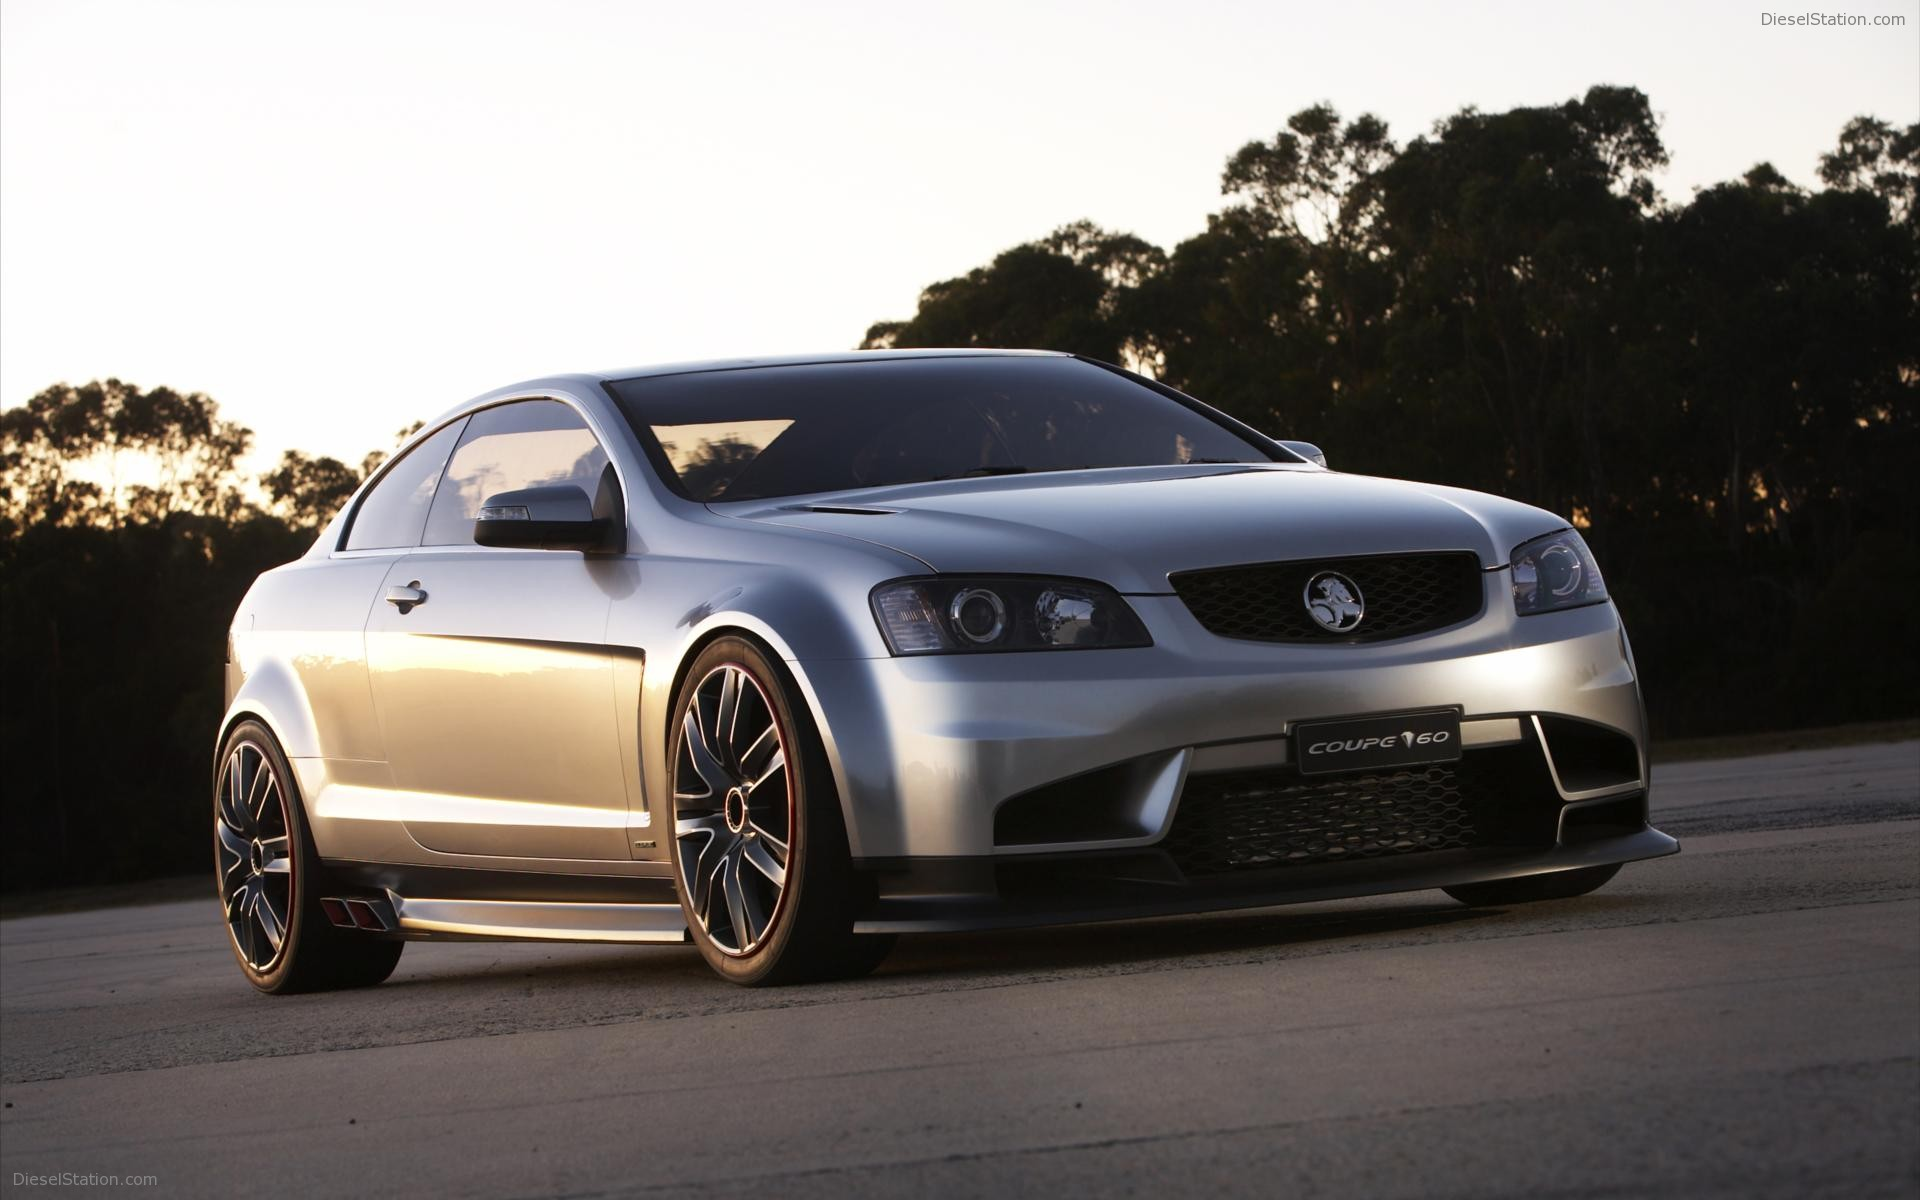 Holden coupe